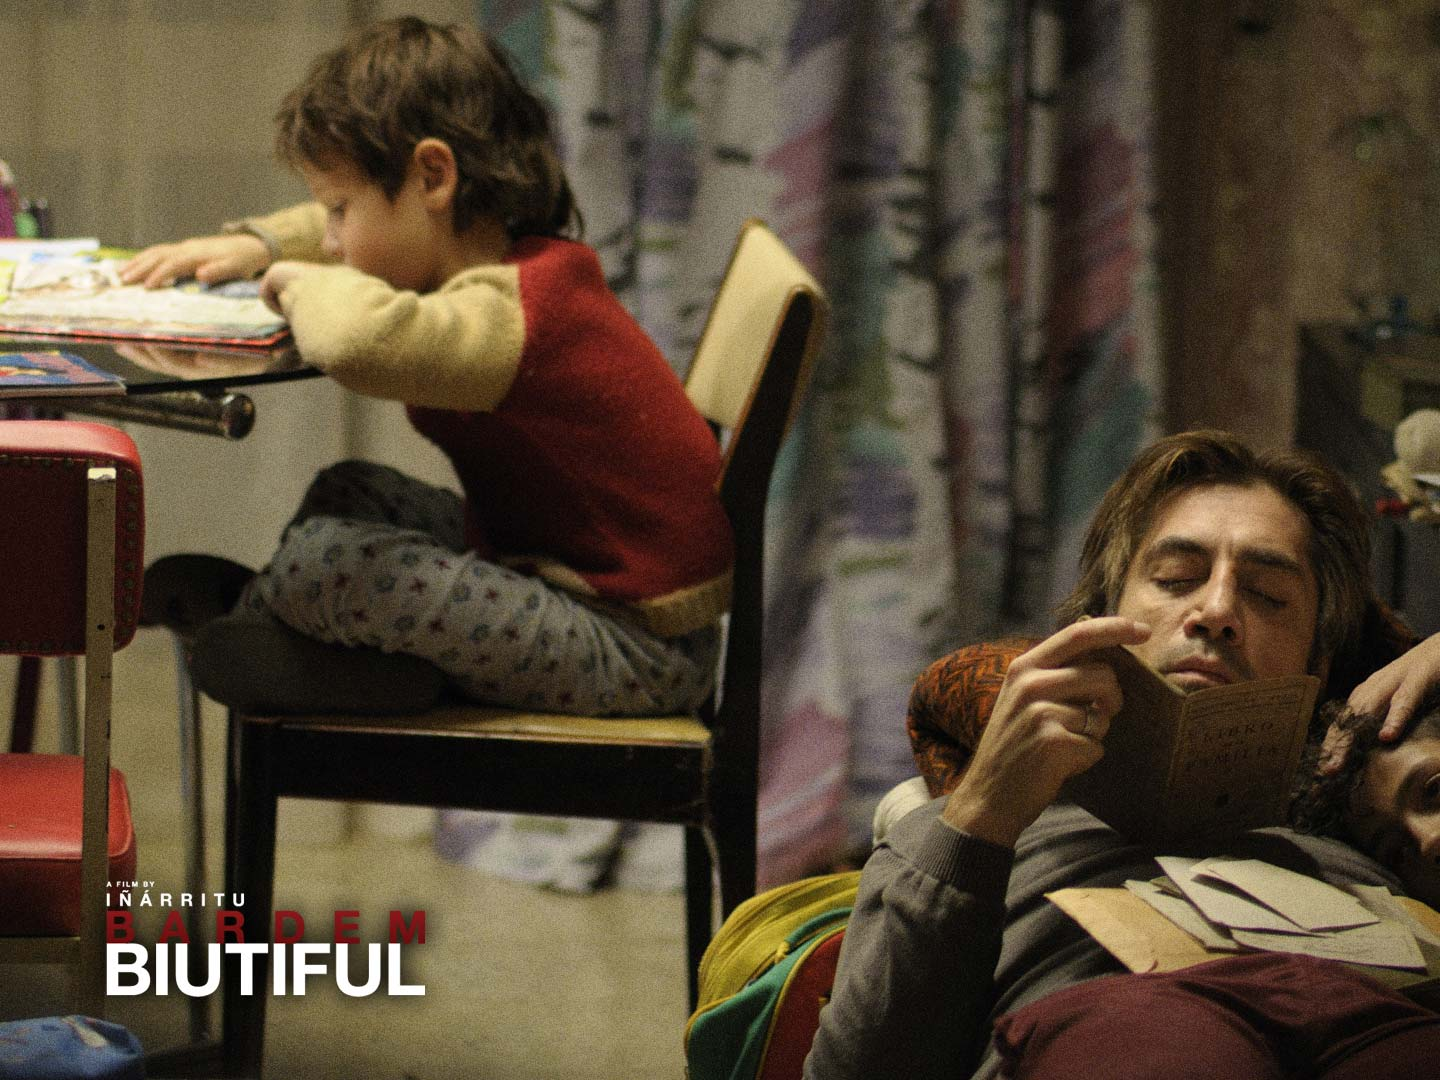 Biutiful Wallpaper download - Javier Bardem keeps close to his children in the movie Biutiful, played by young actors Hanaa Bouchaib and Guillermo Estrella, in this wallpaper image